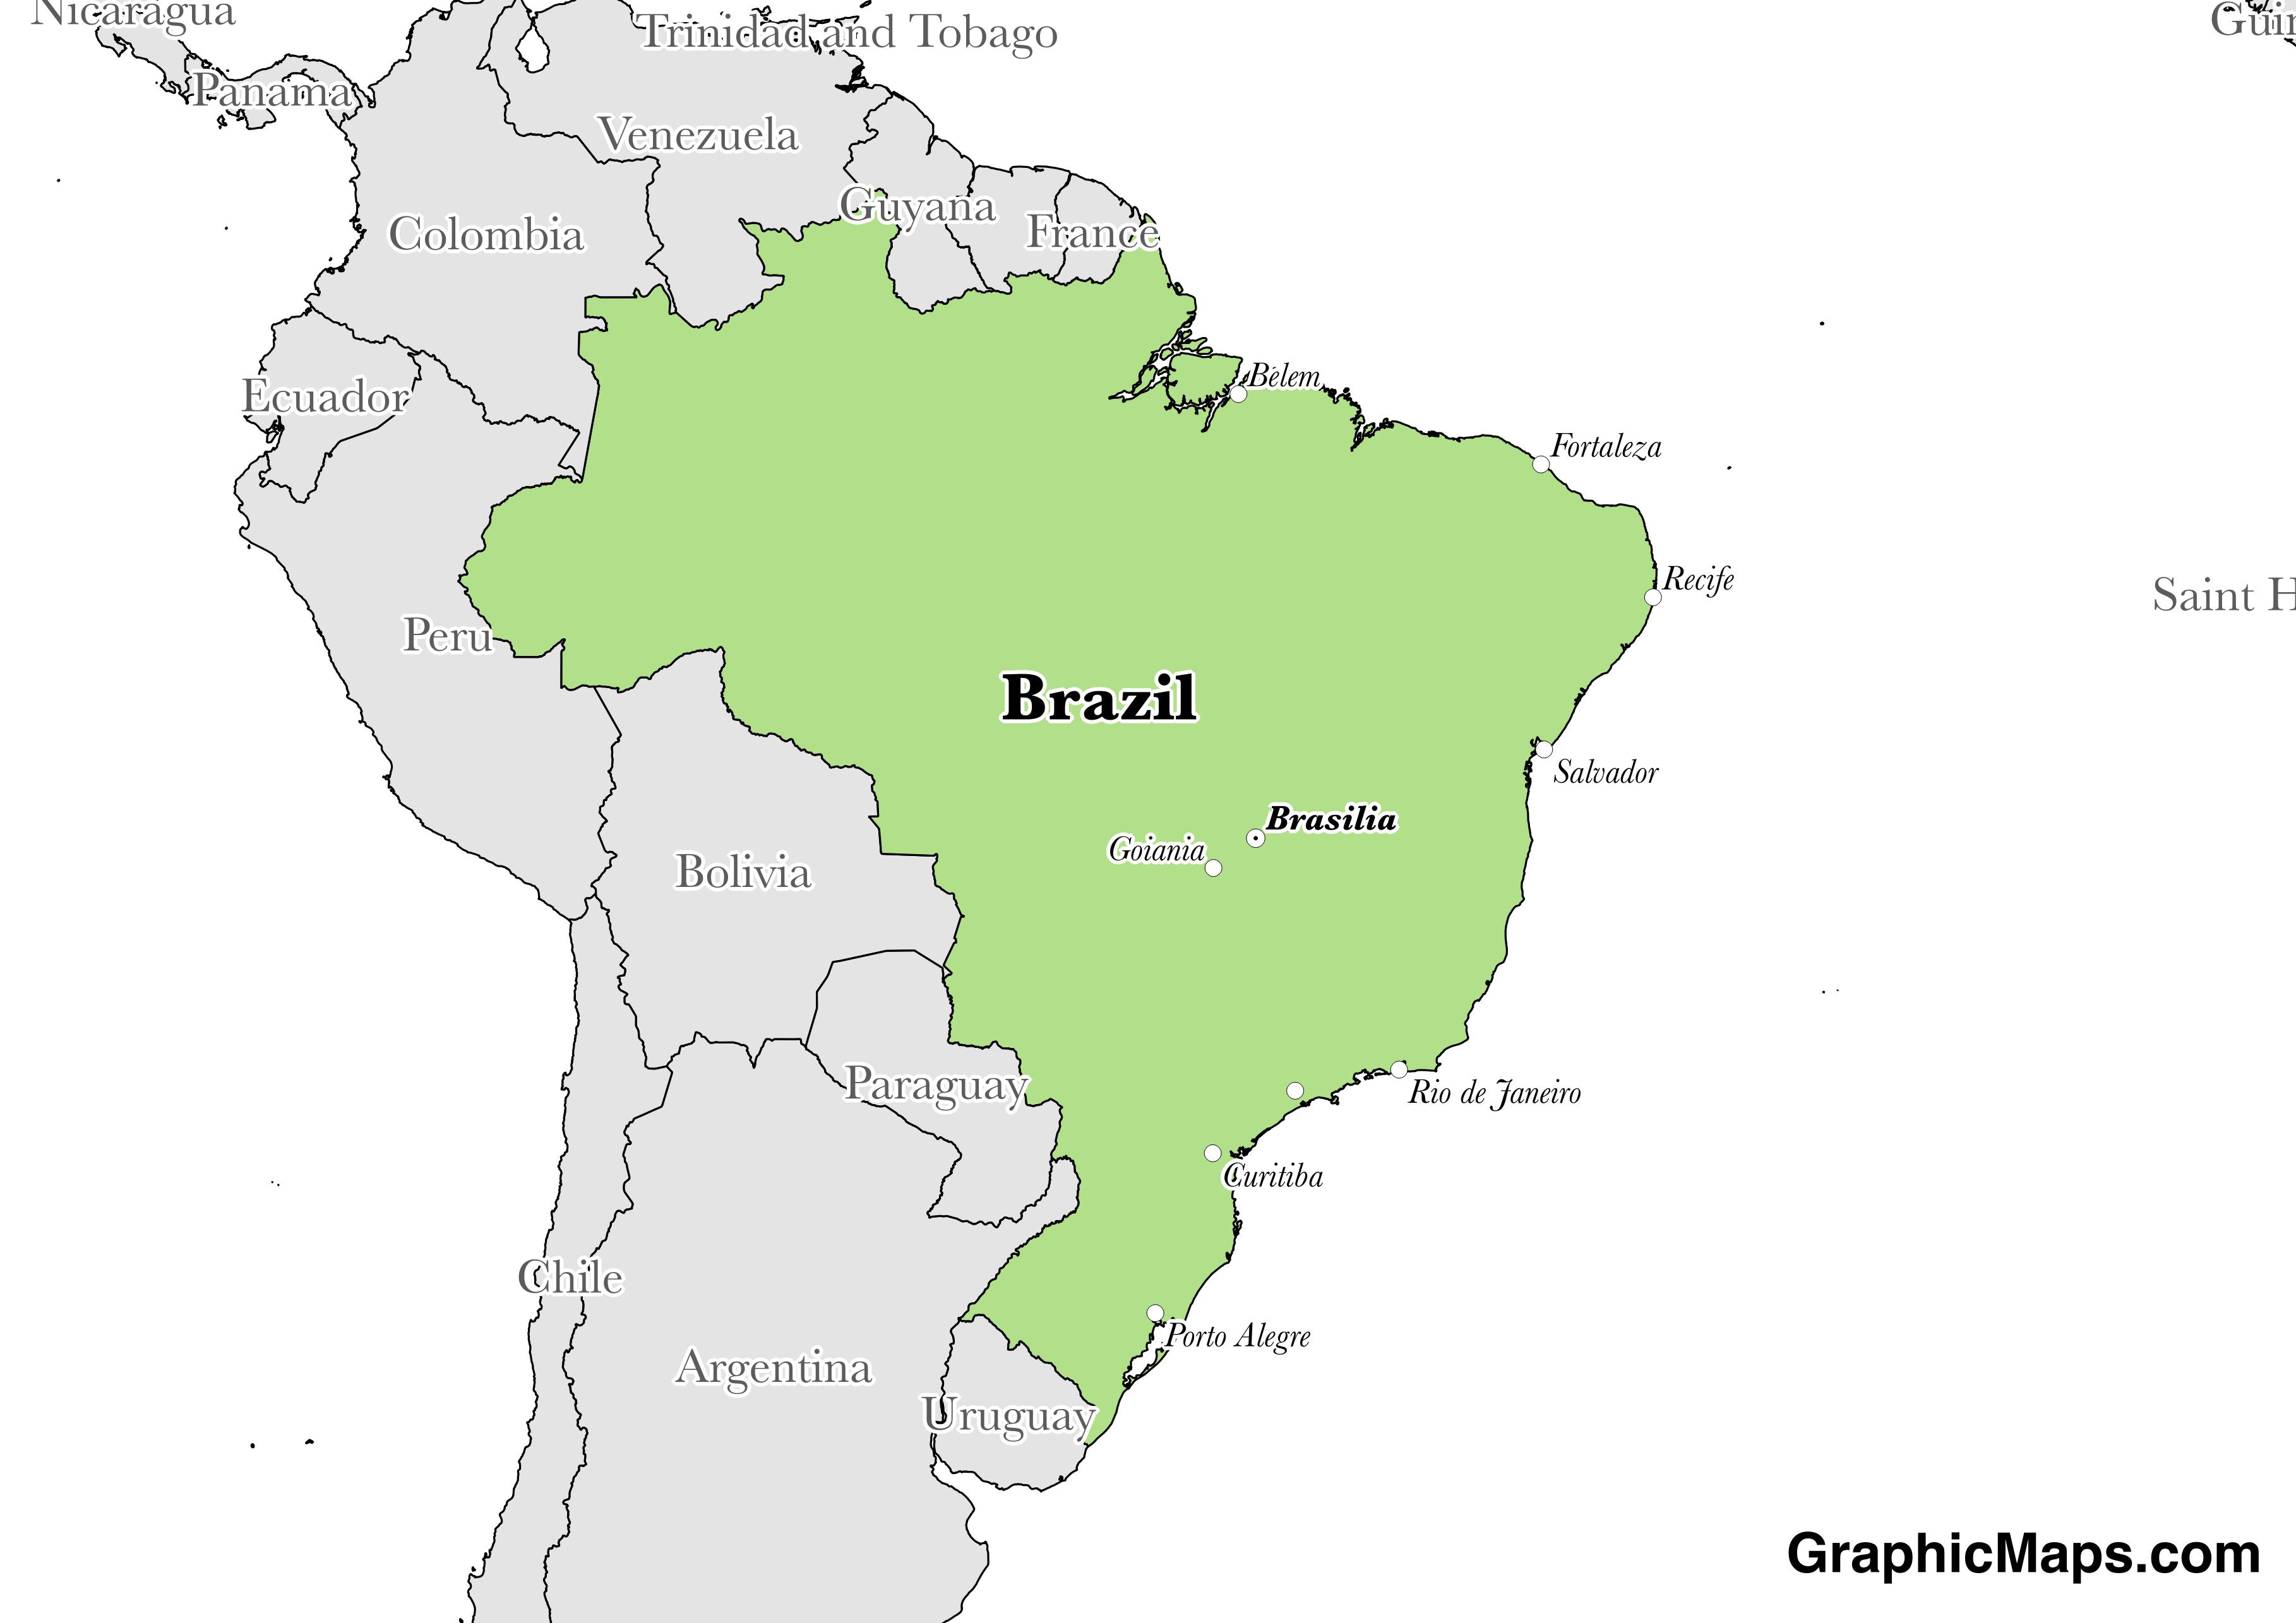 Map showing the location of Brazil